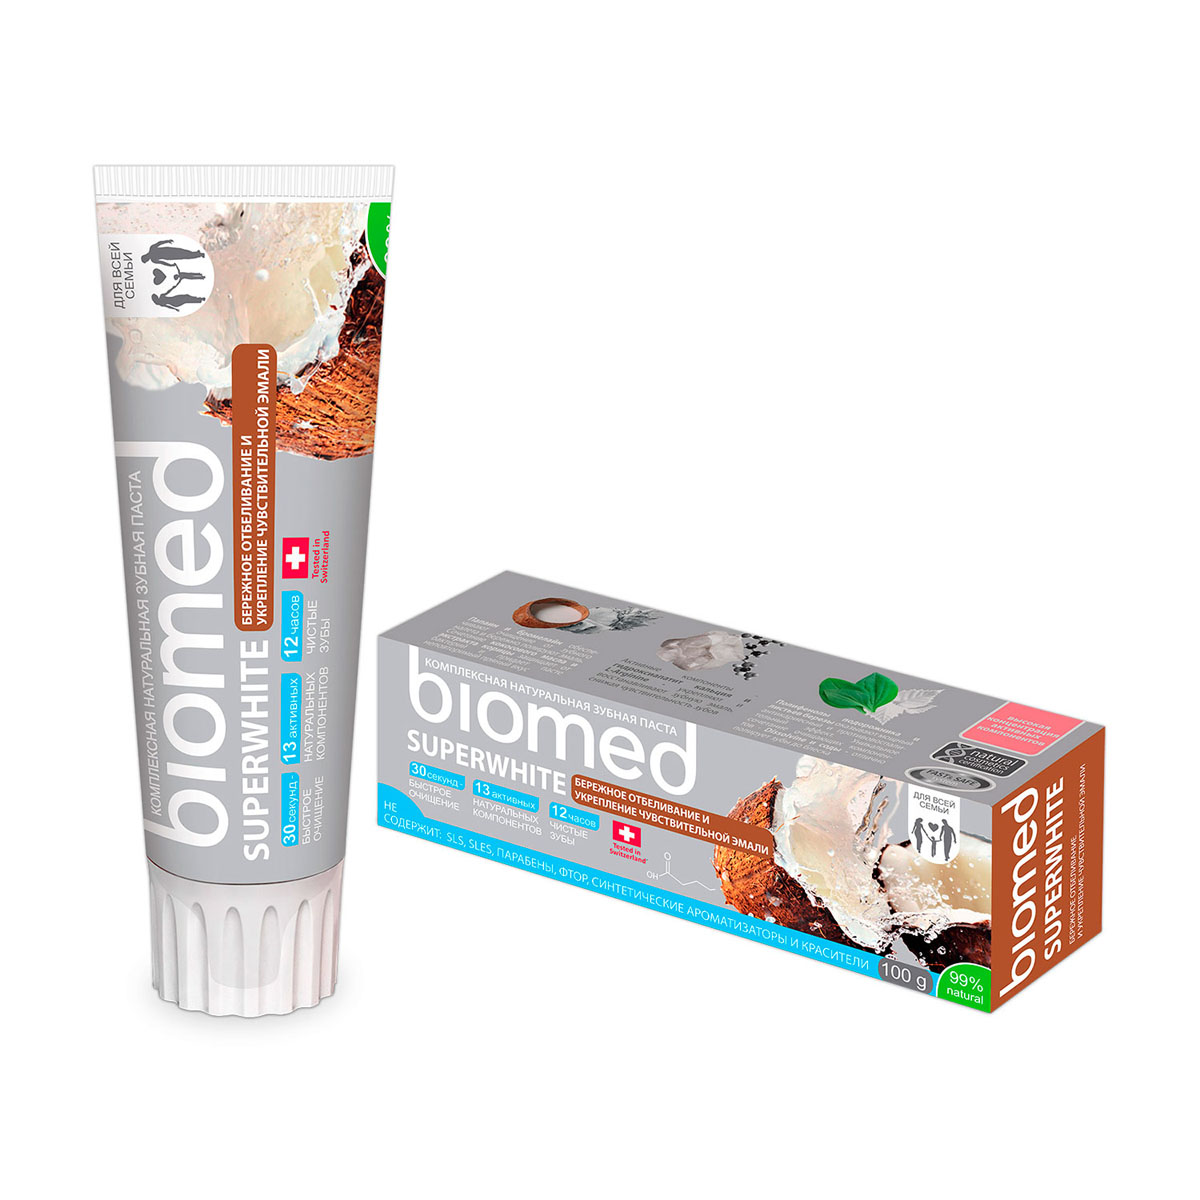 Biomed Зубная паста Superwhite / Супервайт, 100 г зубная паста biomed цена